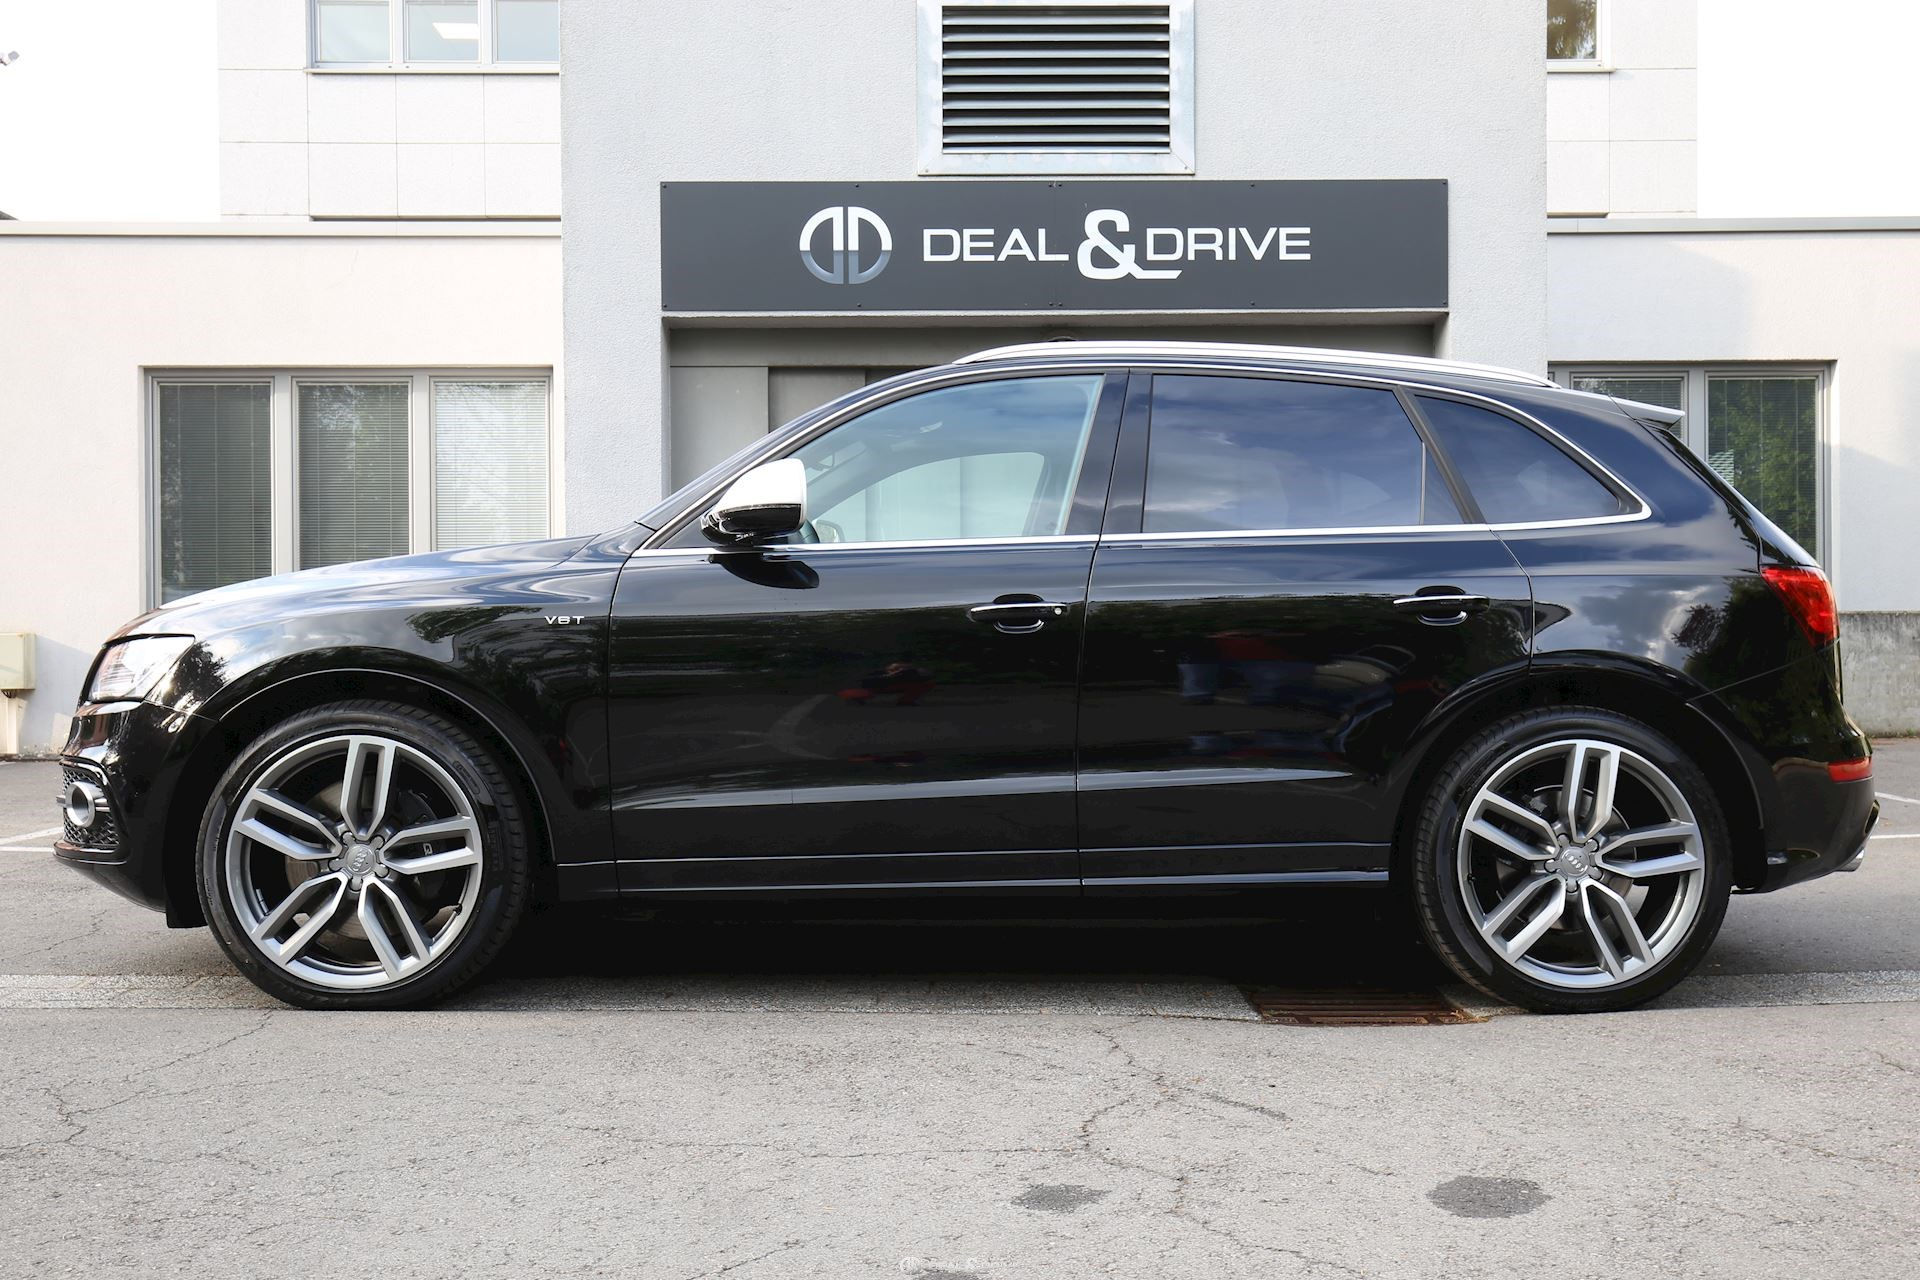 Audi Sq5 Competition 3 0 Tdi Quattro Tiptronic Deal Amp Drive